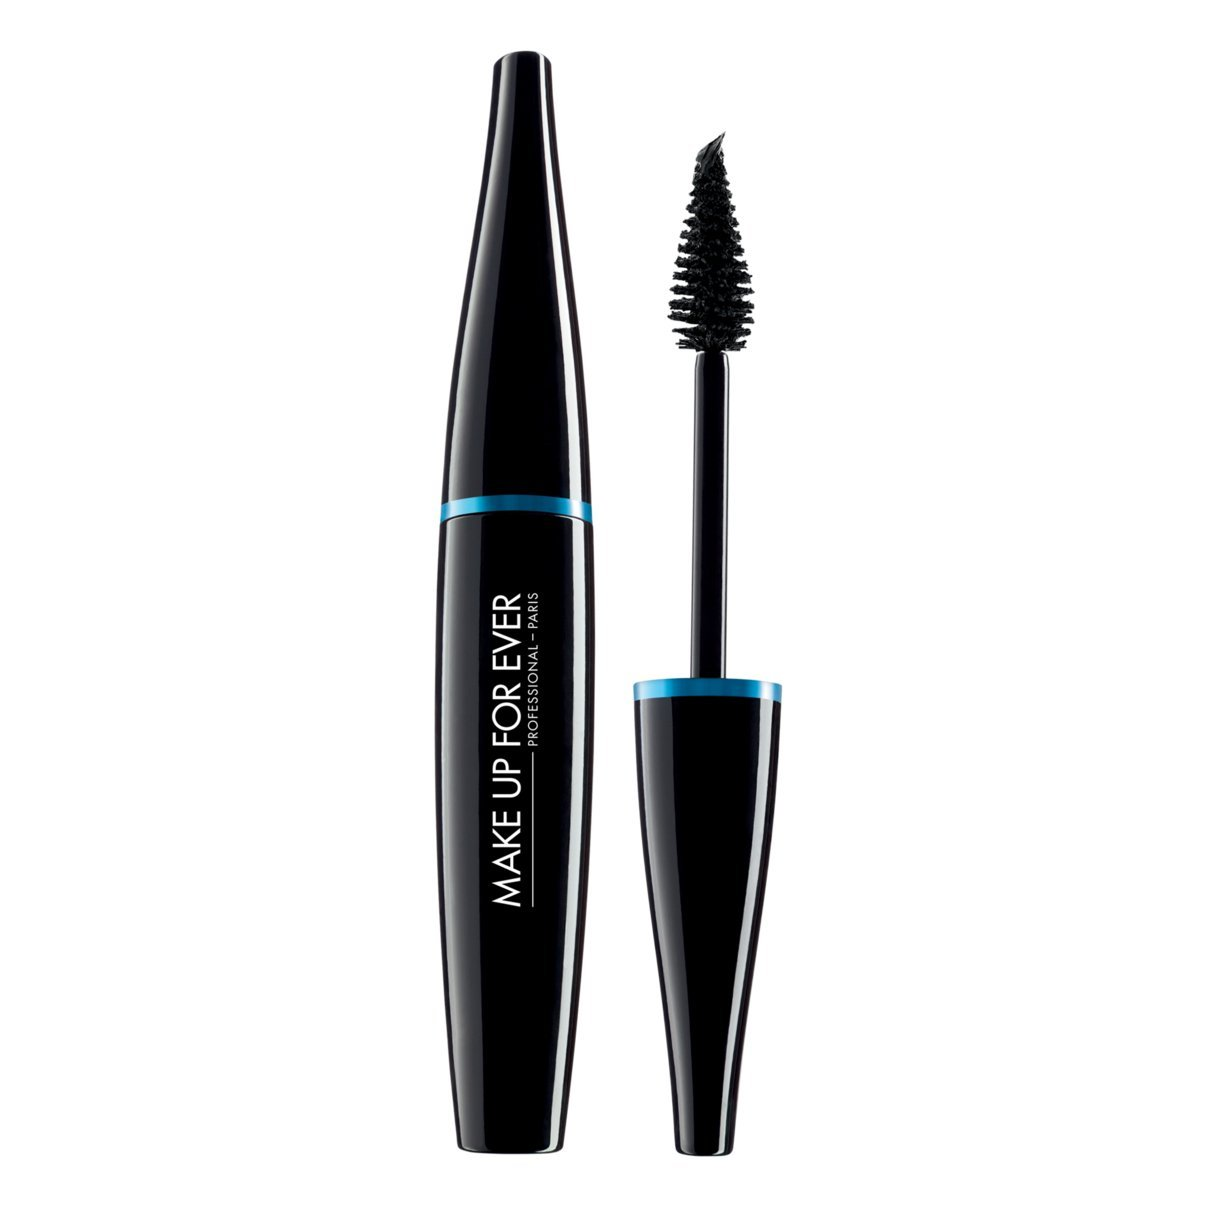 MAKE UP FOREVER MASCARA (BLACK 7ML)-AQUA SMOKY EXTRAVAGANT DRAMATIC IMPAET & GRAPHIC, PRECISION ,WATERPROOF , AUTHENTIC 100% FROM PARIS FRANCE